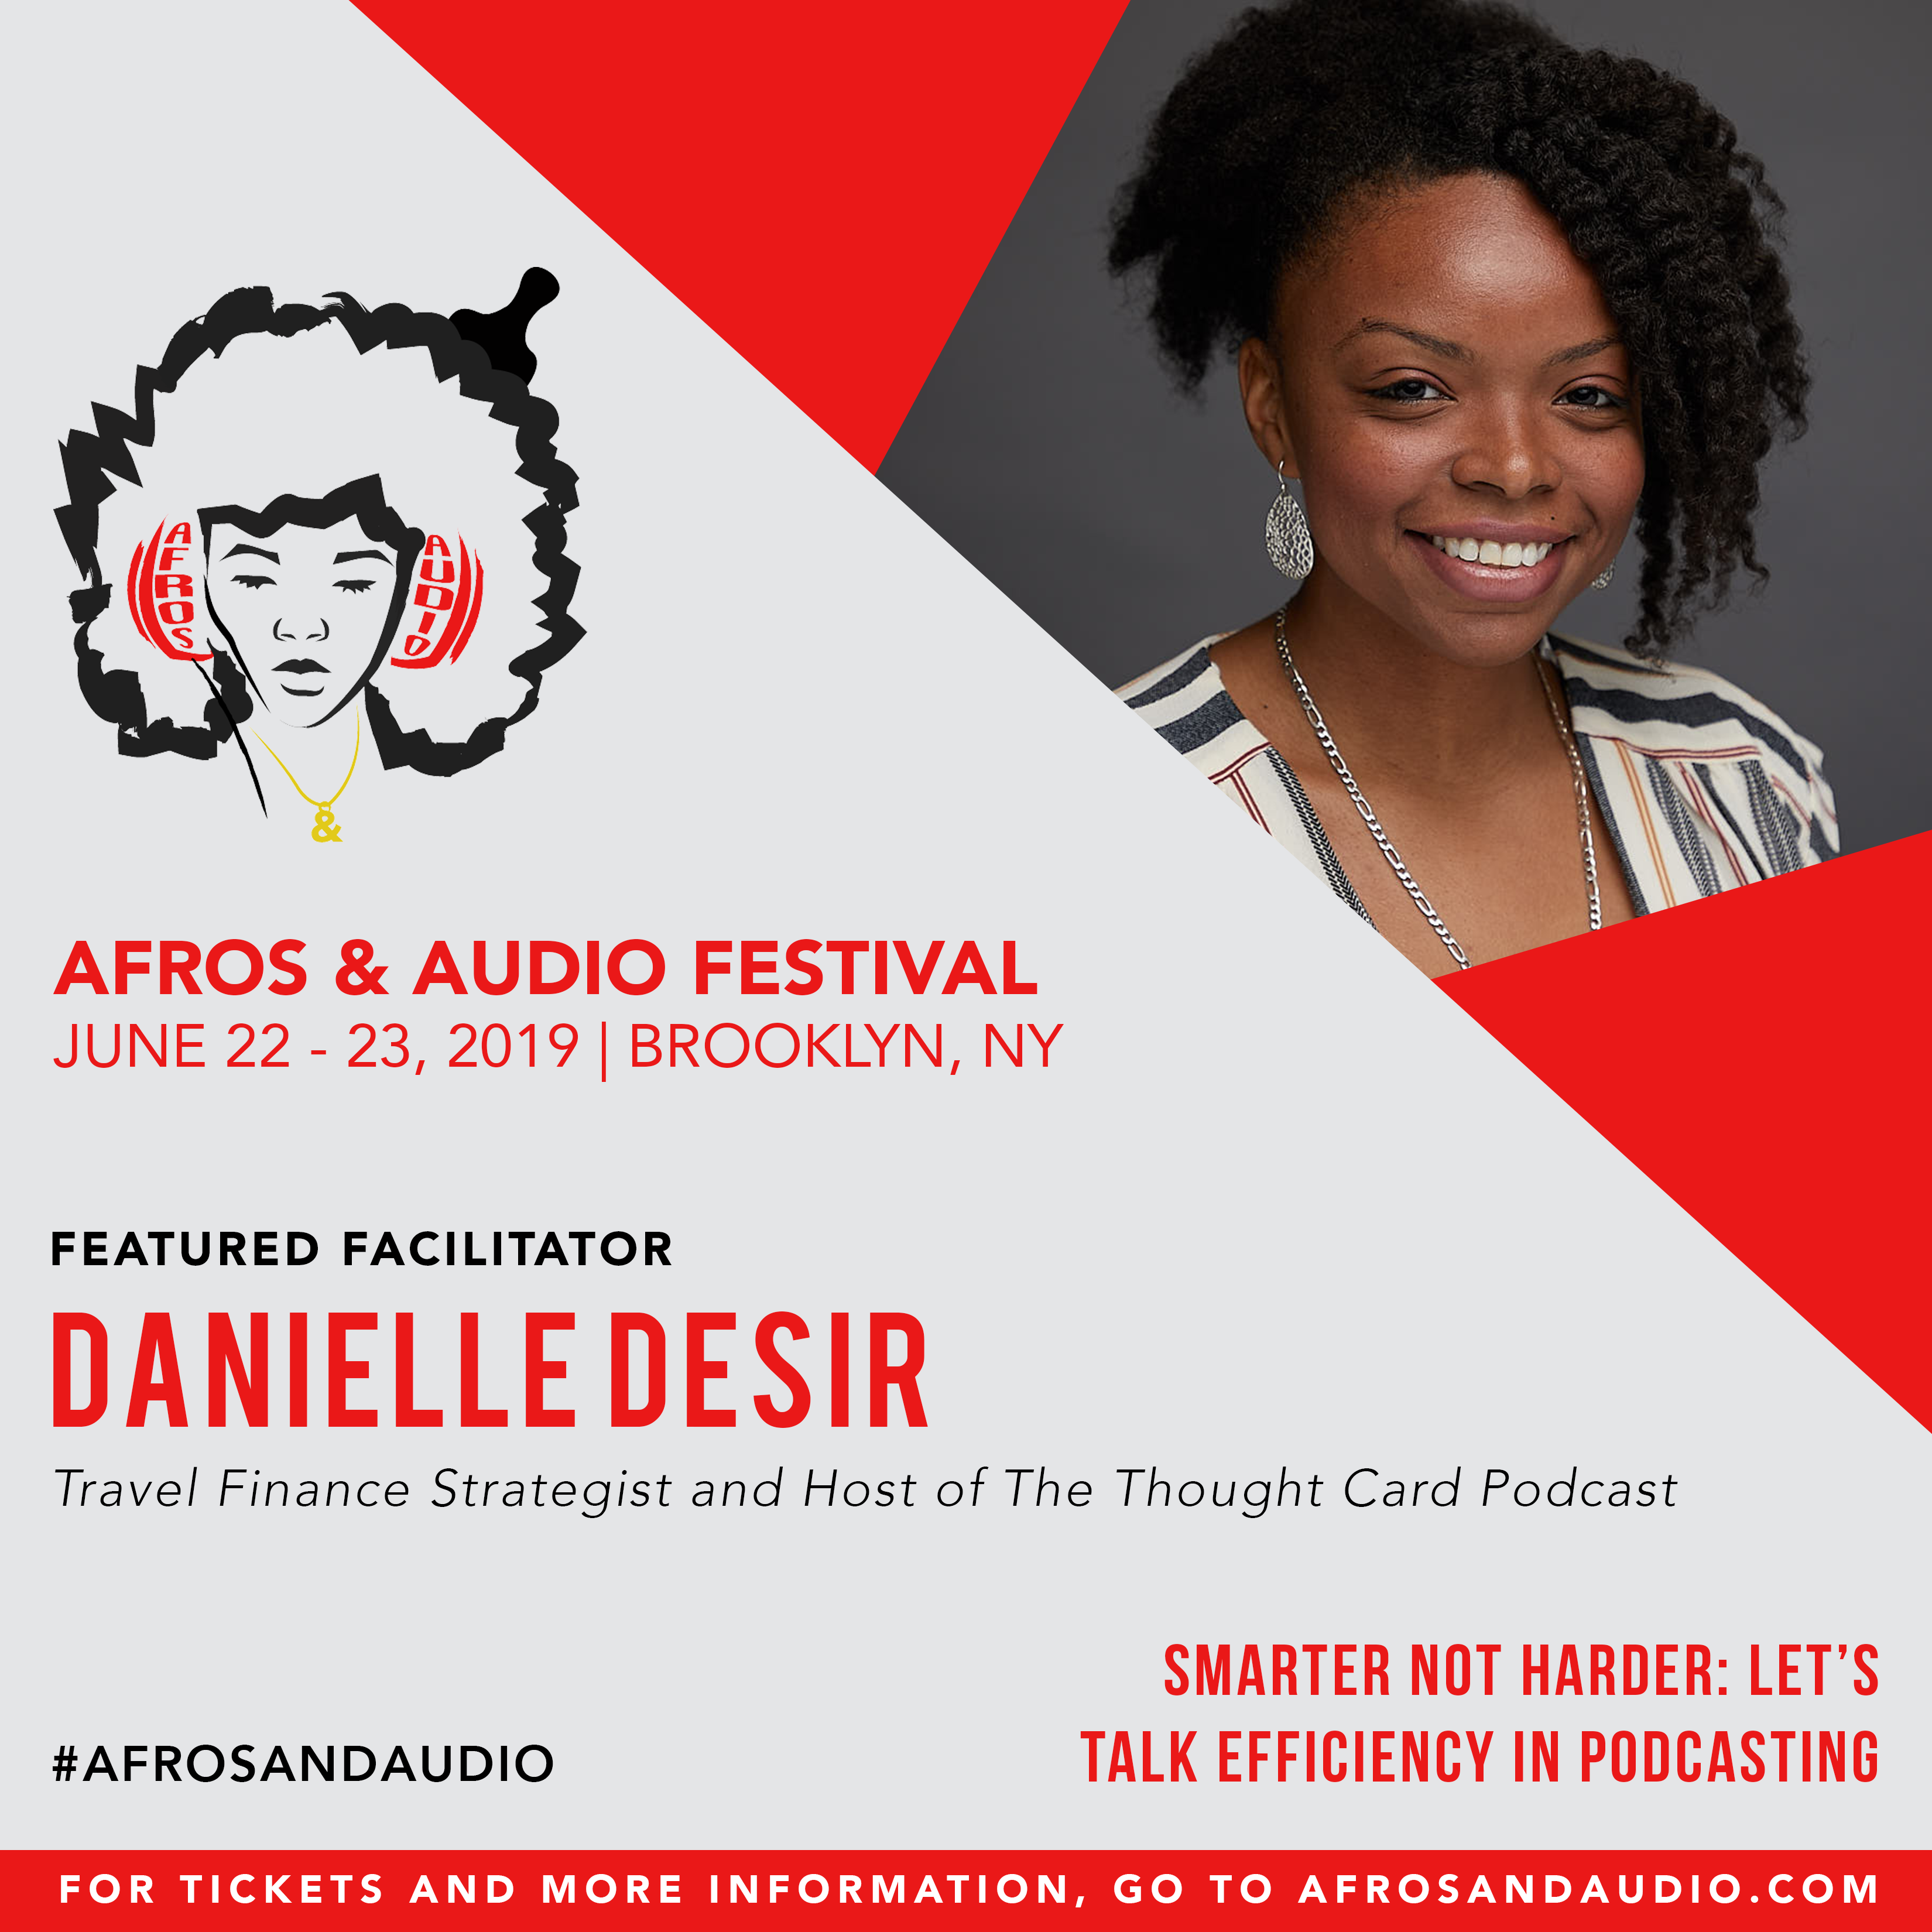 AfrosandAudio Presenter Posts - Danielle